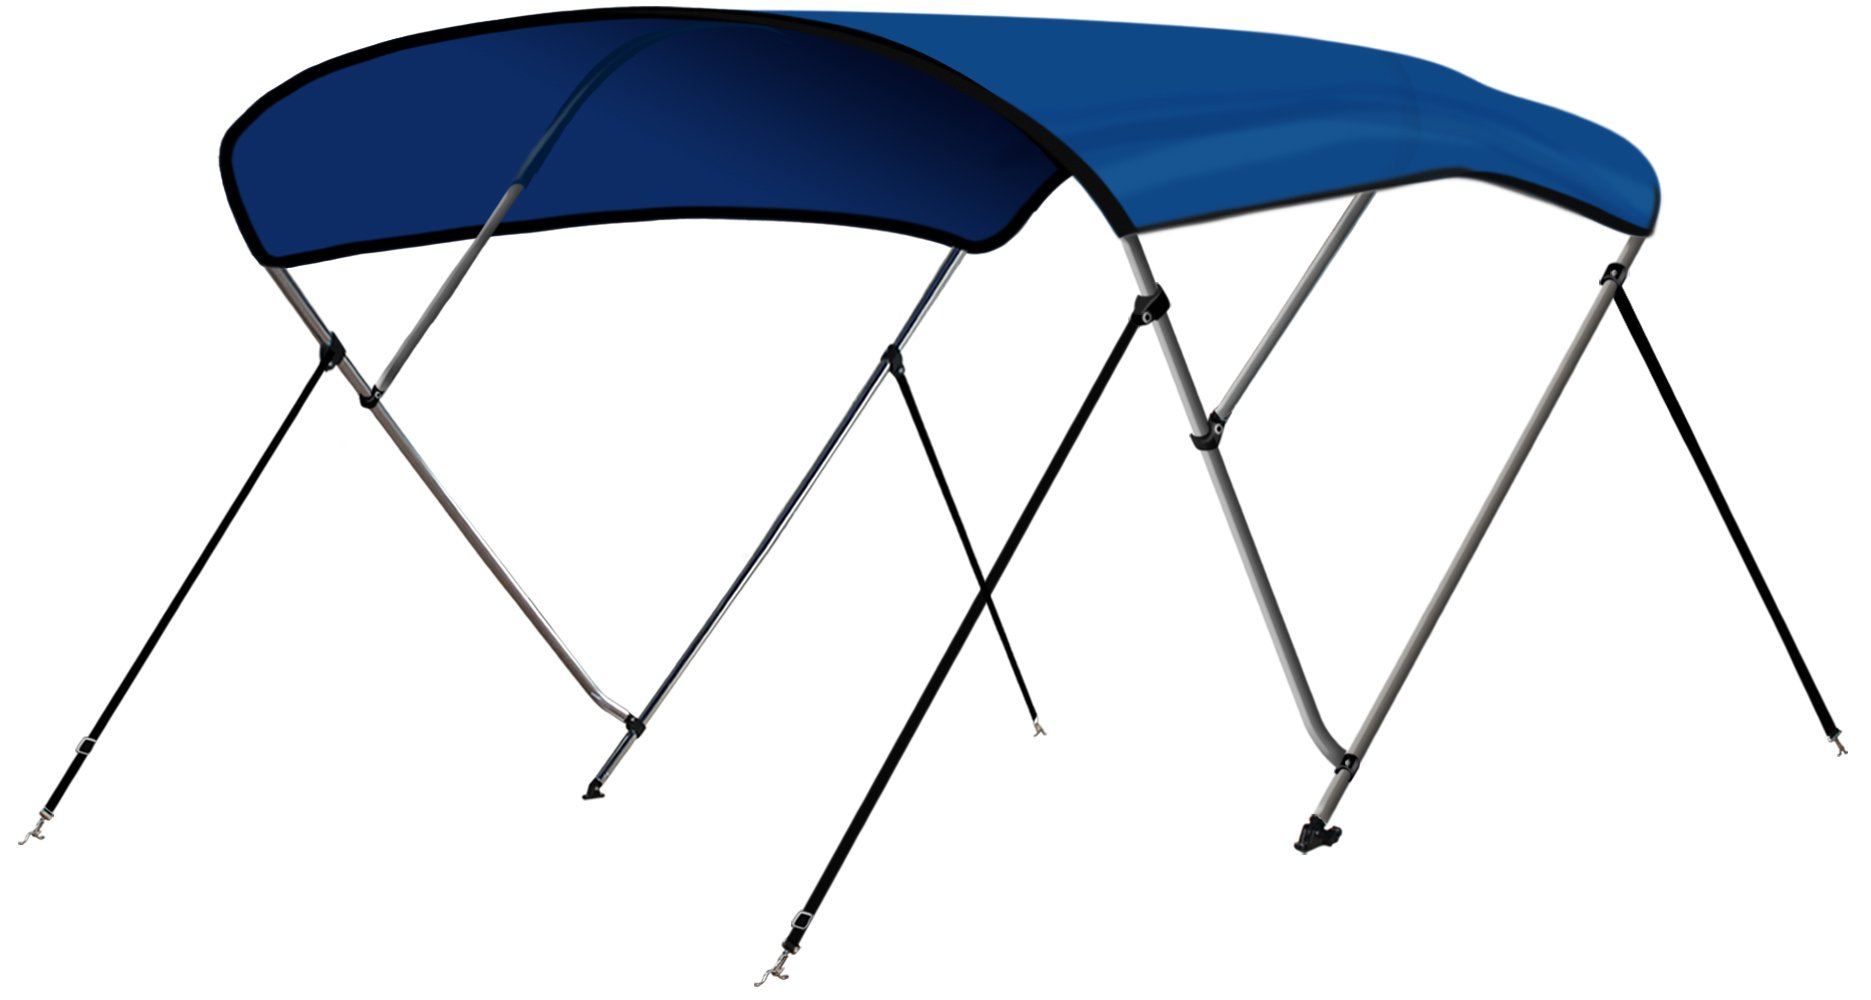 Leader Accessories 3 Bow Pacific Blue 6'L x 46'' H x 73''-78'' W Bimini Top Boat Cover 4 Straps for Front and Rear Includes Mounting Hardwares with 1 Inch Aluminum Frame by Leader Accessories